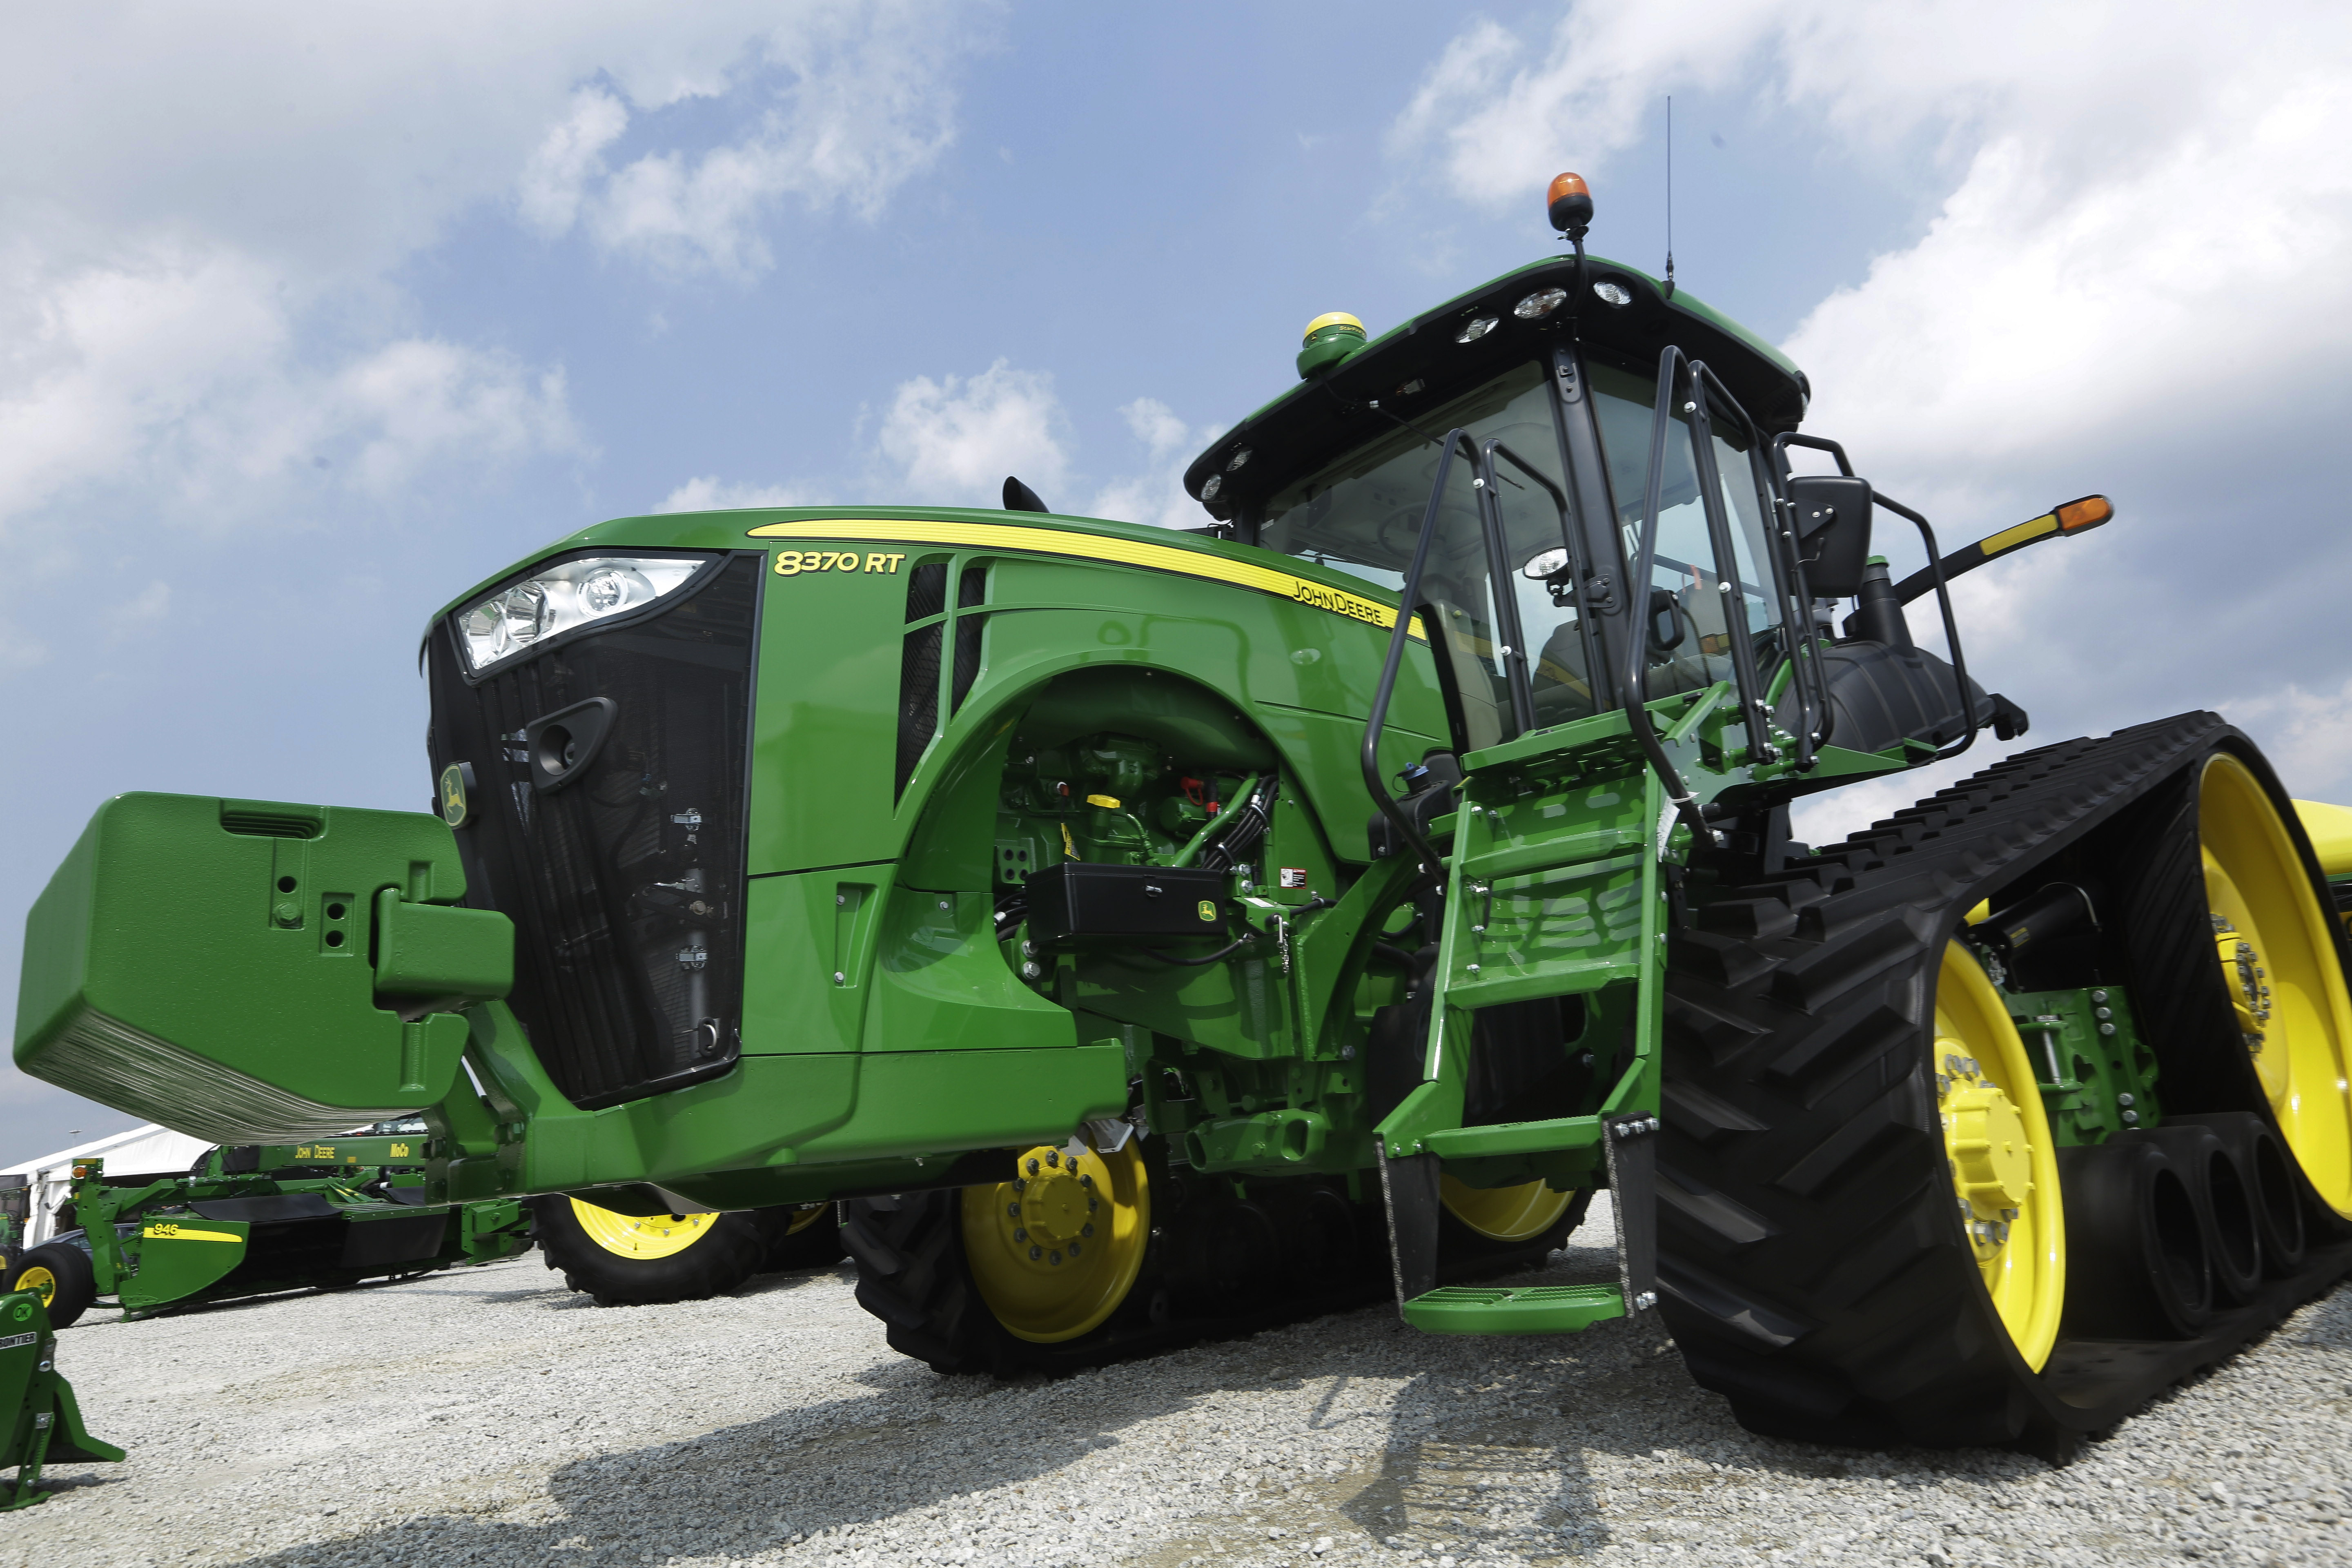 In this Monday, Aug. 31, 2015 photo, John Deere equipment is on display at the Farm Progress Show in Decatur, Ill. (AP Photo/Seth Perlman)